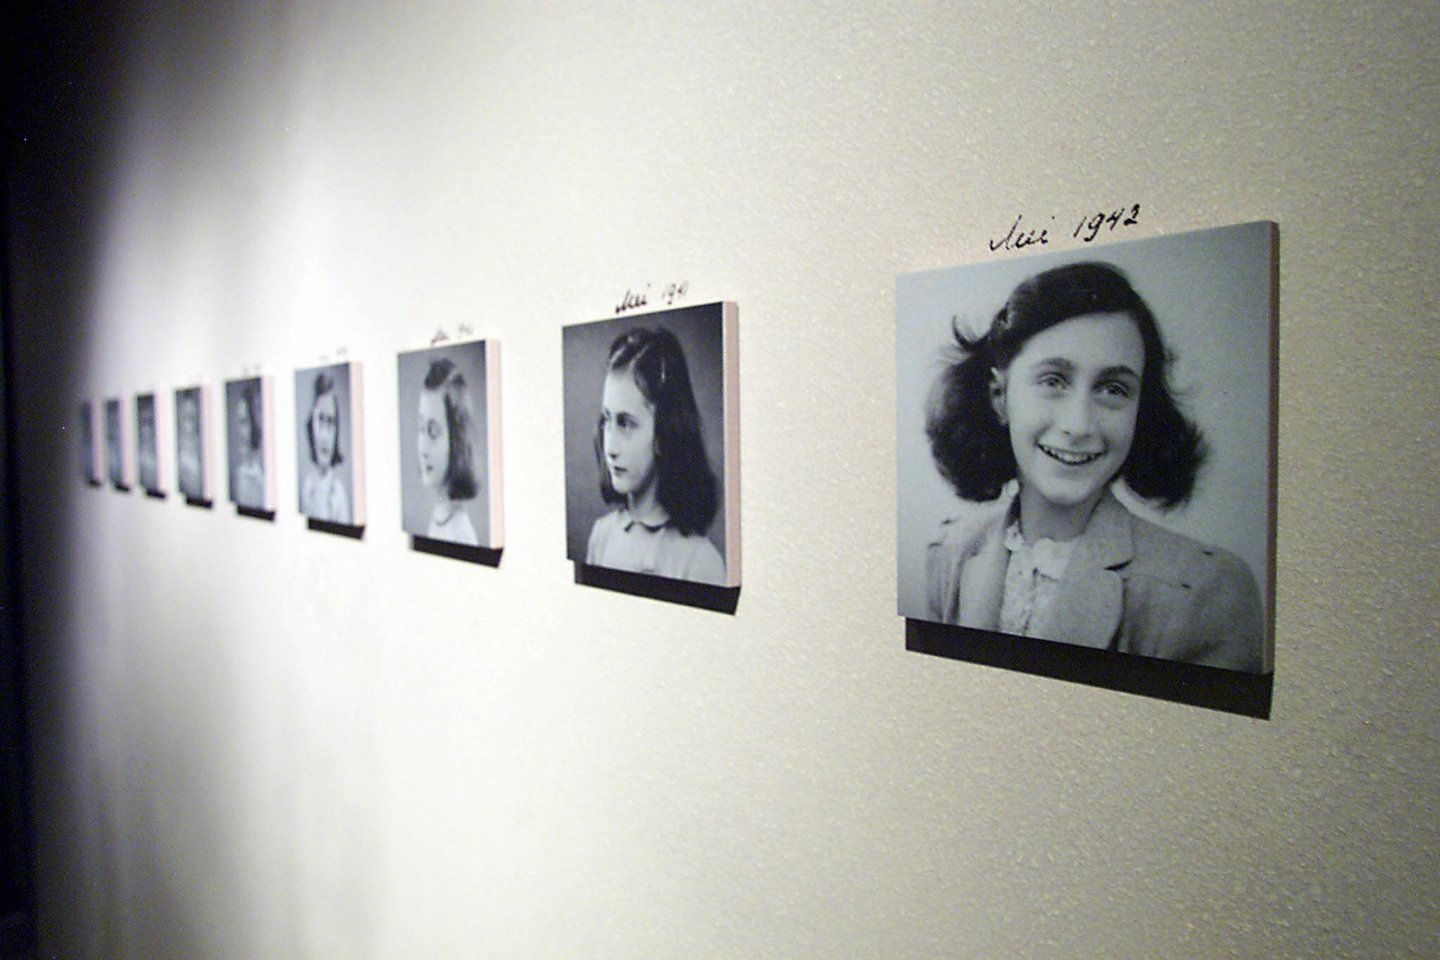 The new Anne Frank exhibit  will  open 11 June 2003 by US First Lady Laura Bush at The United States Holocaust Memorial Museum in Washington, DC. The United States Holocaust Memorial Museum is commemorating its 10th Anniversary from April 2003 to April 2004 through programs that underscore the resonance and urgency of the lessons of the Holocaust for todays world   TIM SLOAN / AFP PHOTO  (Photo credit should read TIM SLOAN/AFP/Getty Images)